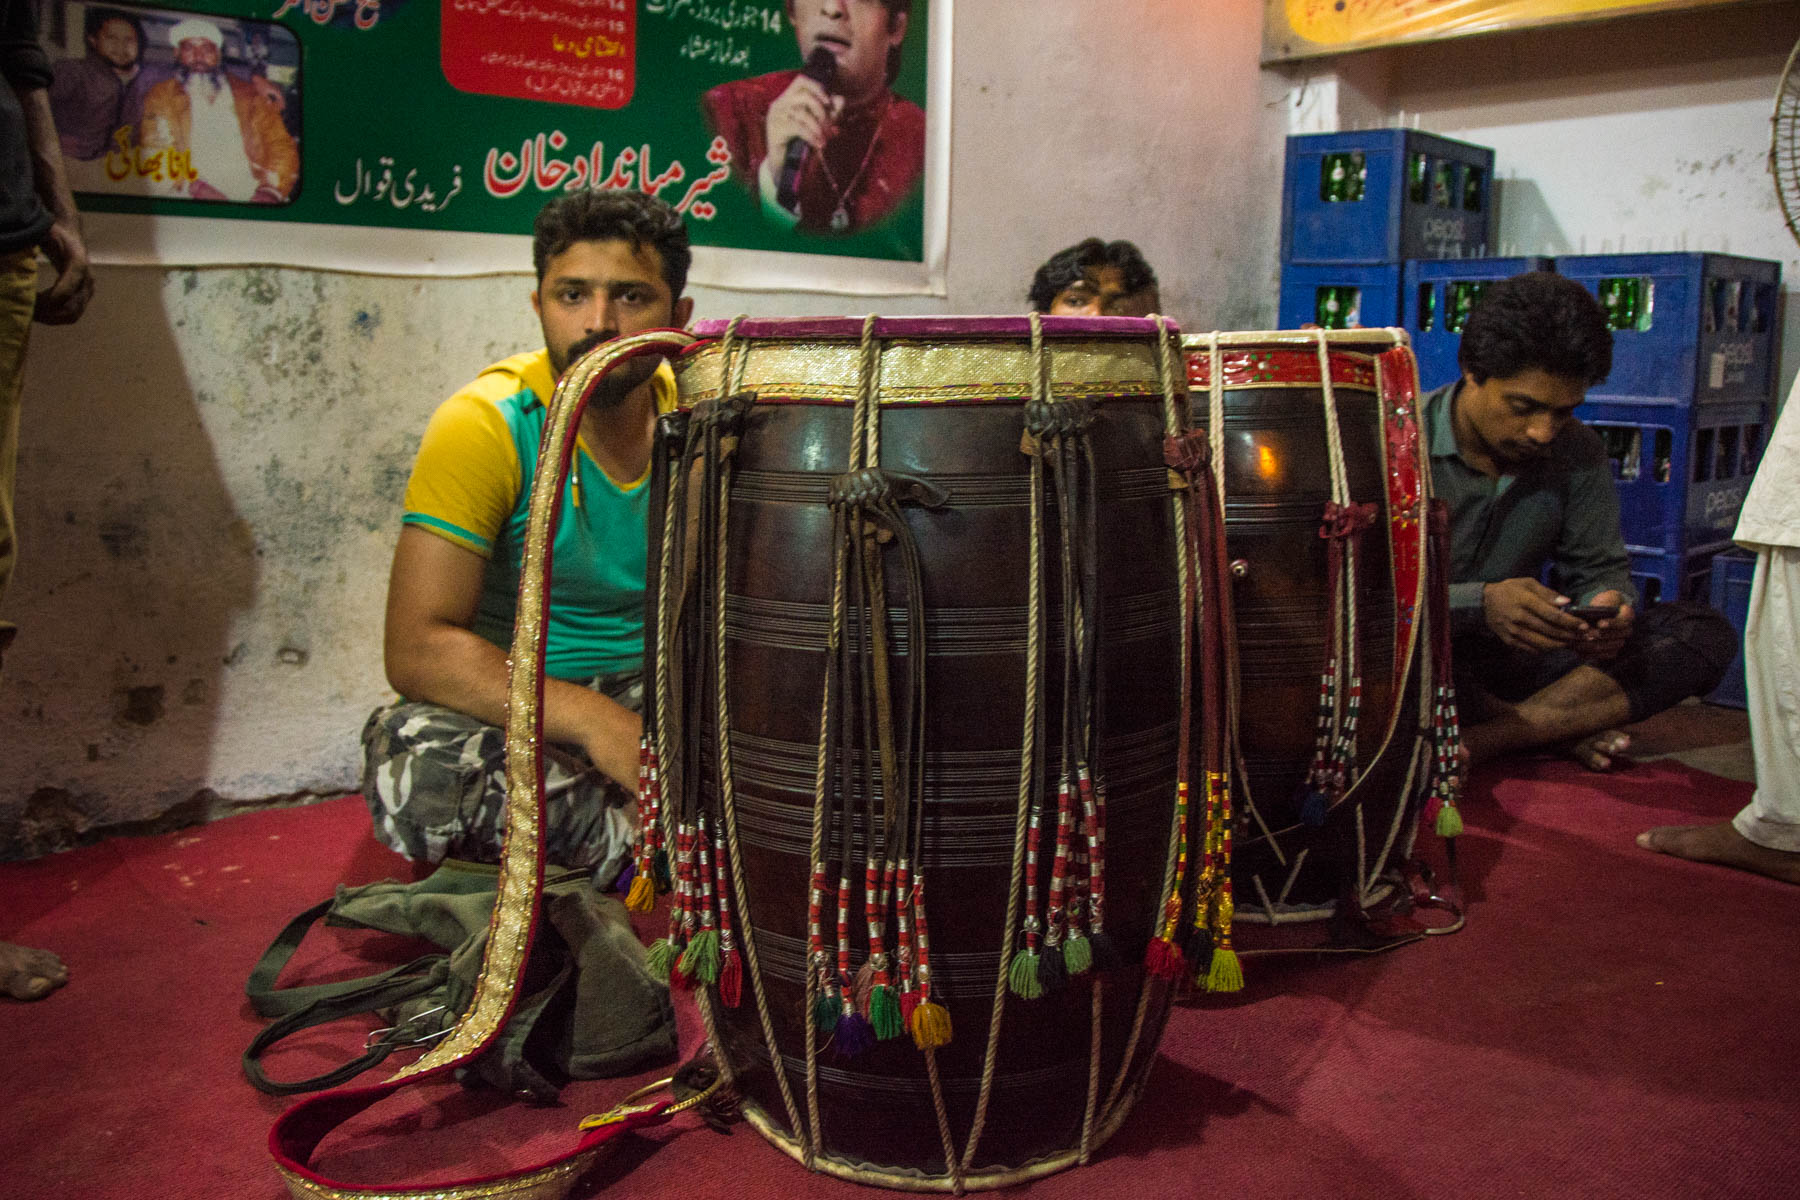 Sufi dhamal in Lahore - Dhol drums and drummers waiting to play at Shah Jamal shrine - Lost With Purpose travel blog